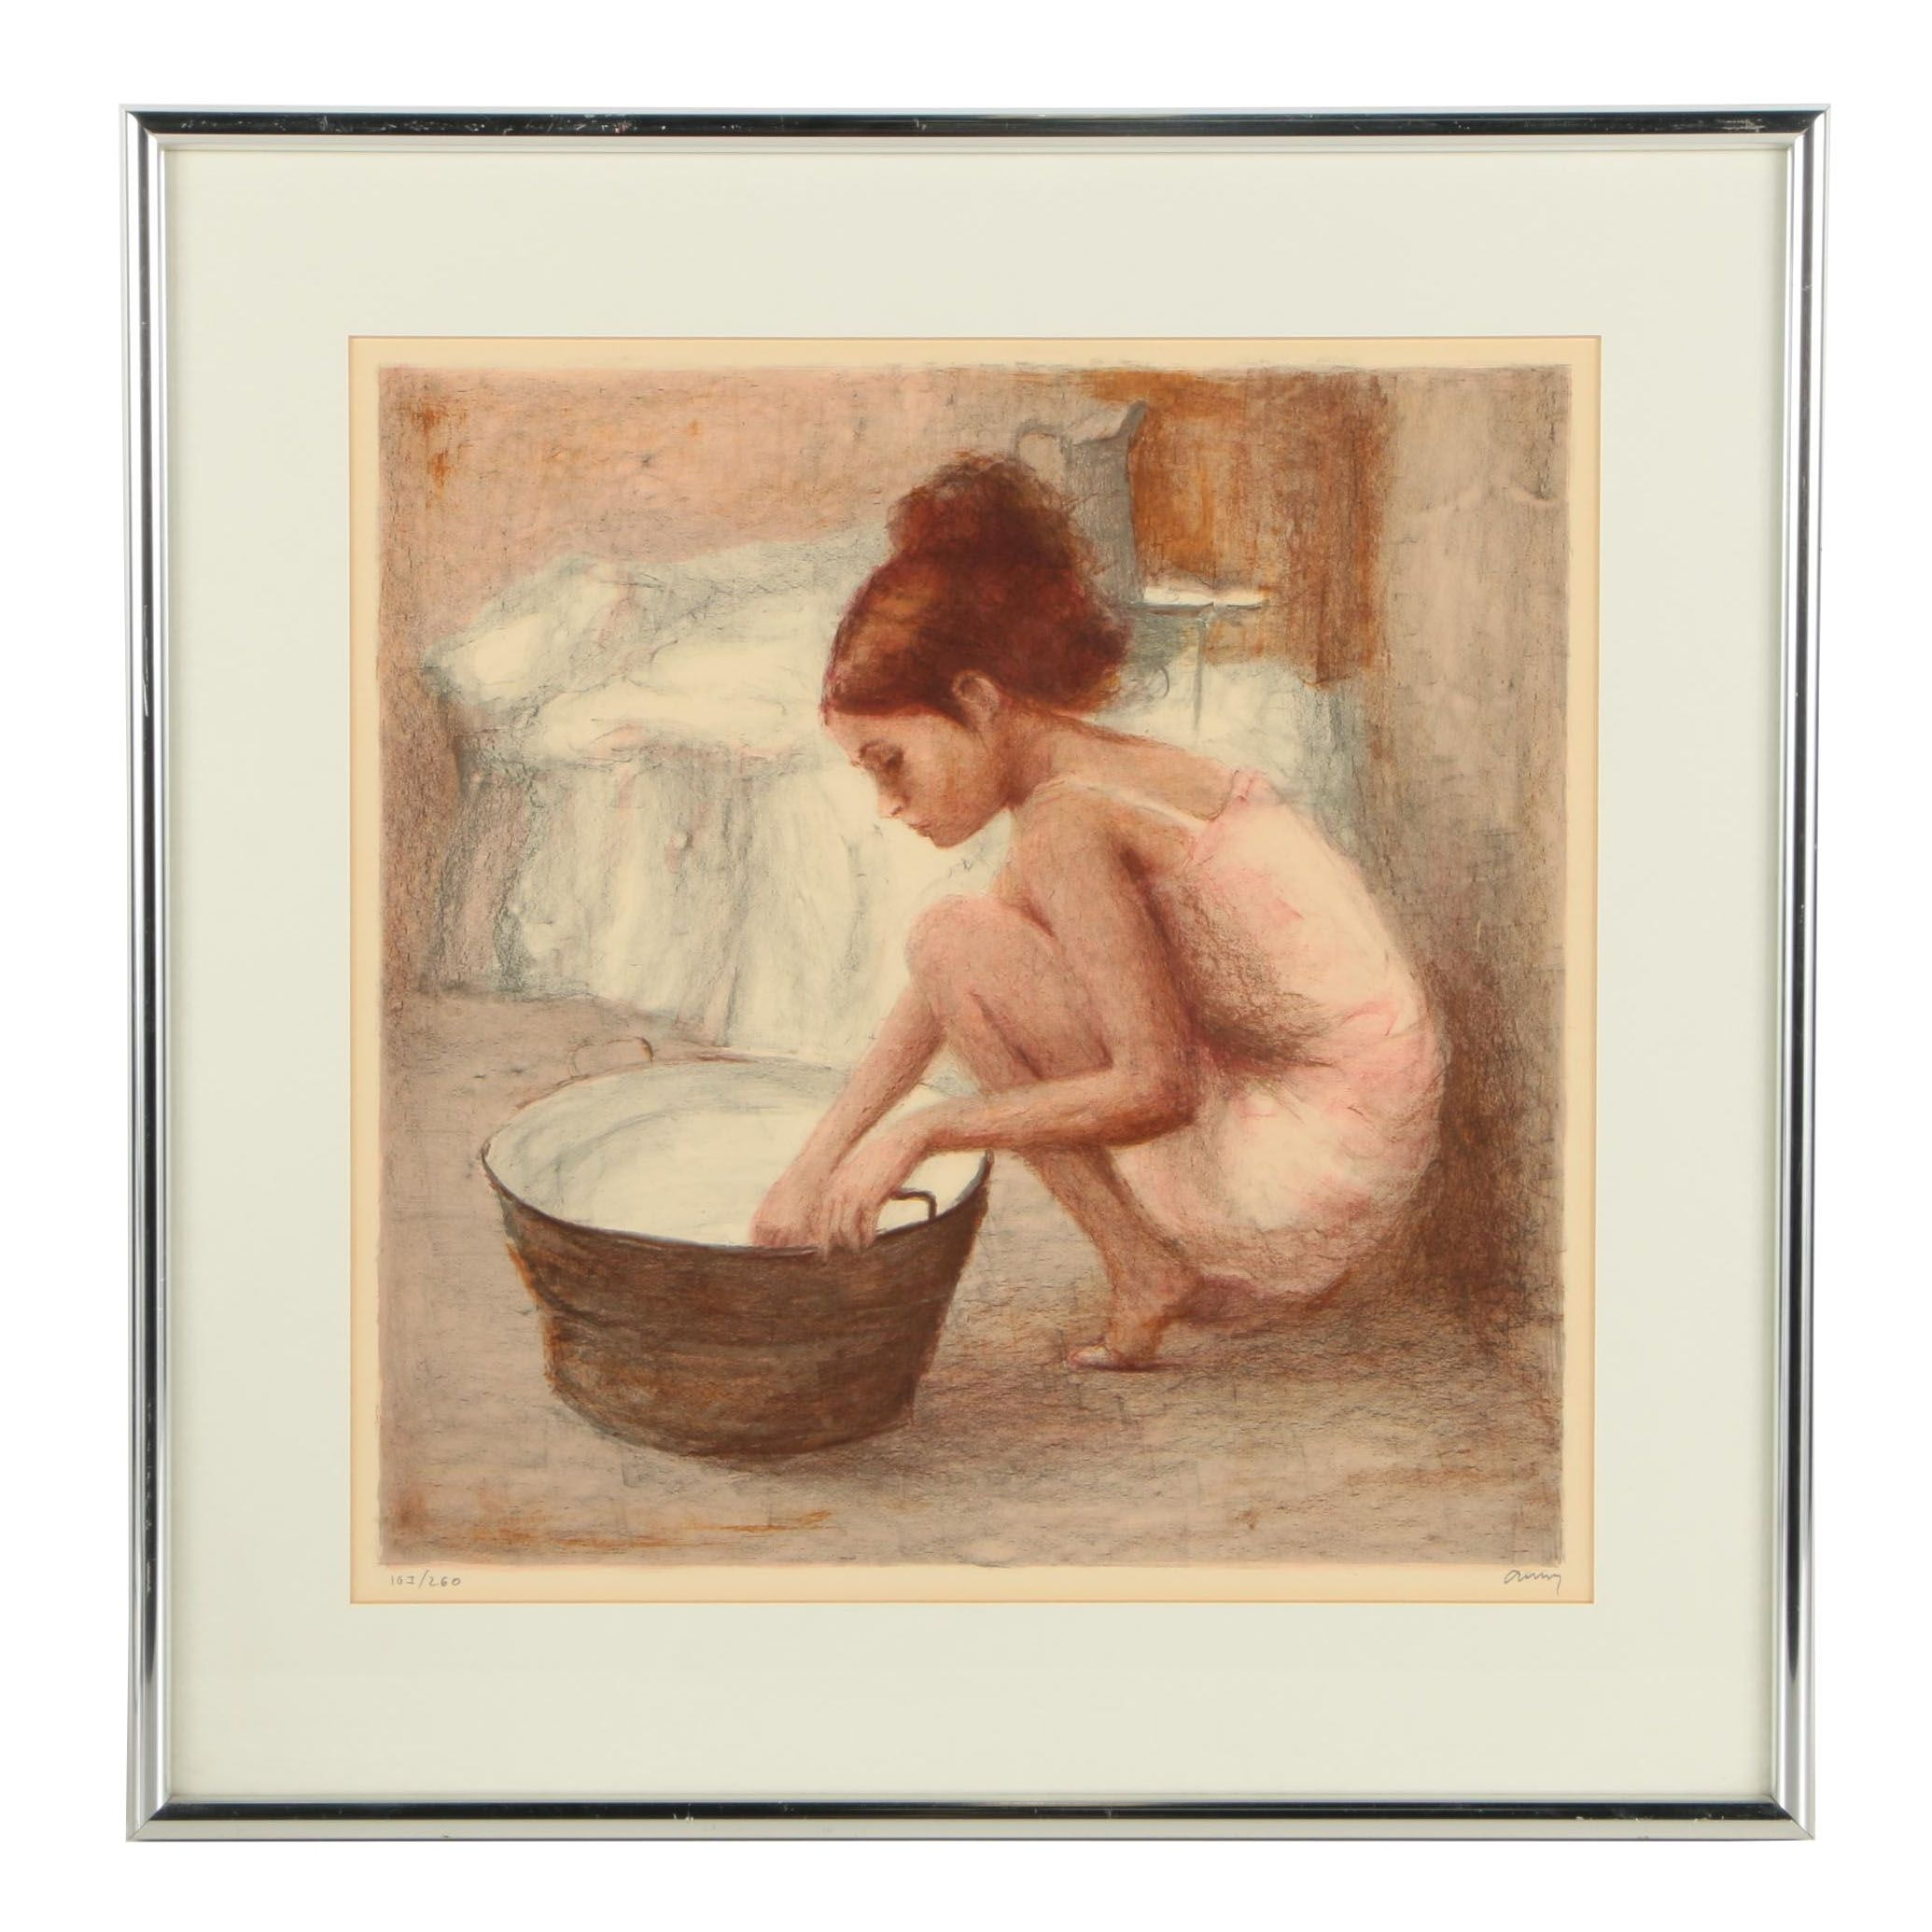 Limited Edition Lithograph on Paper of Woman and Tub